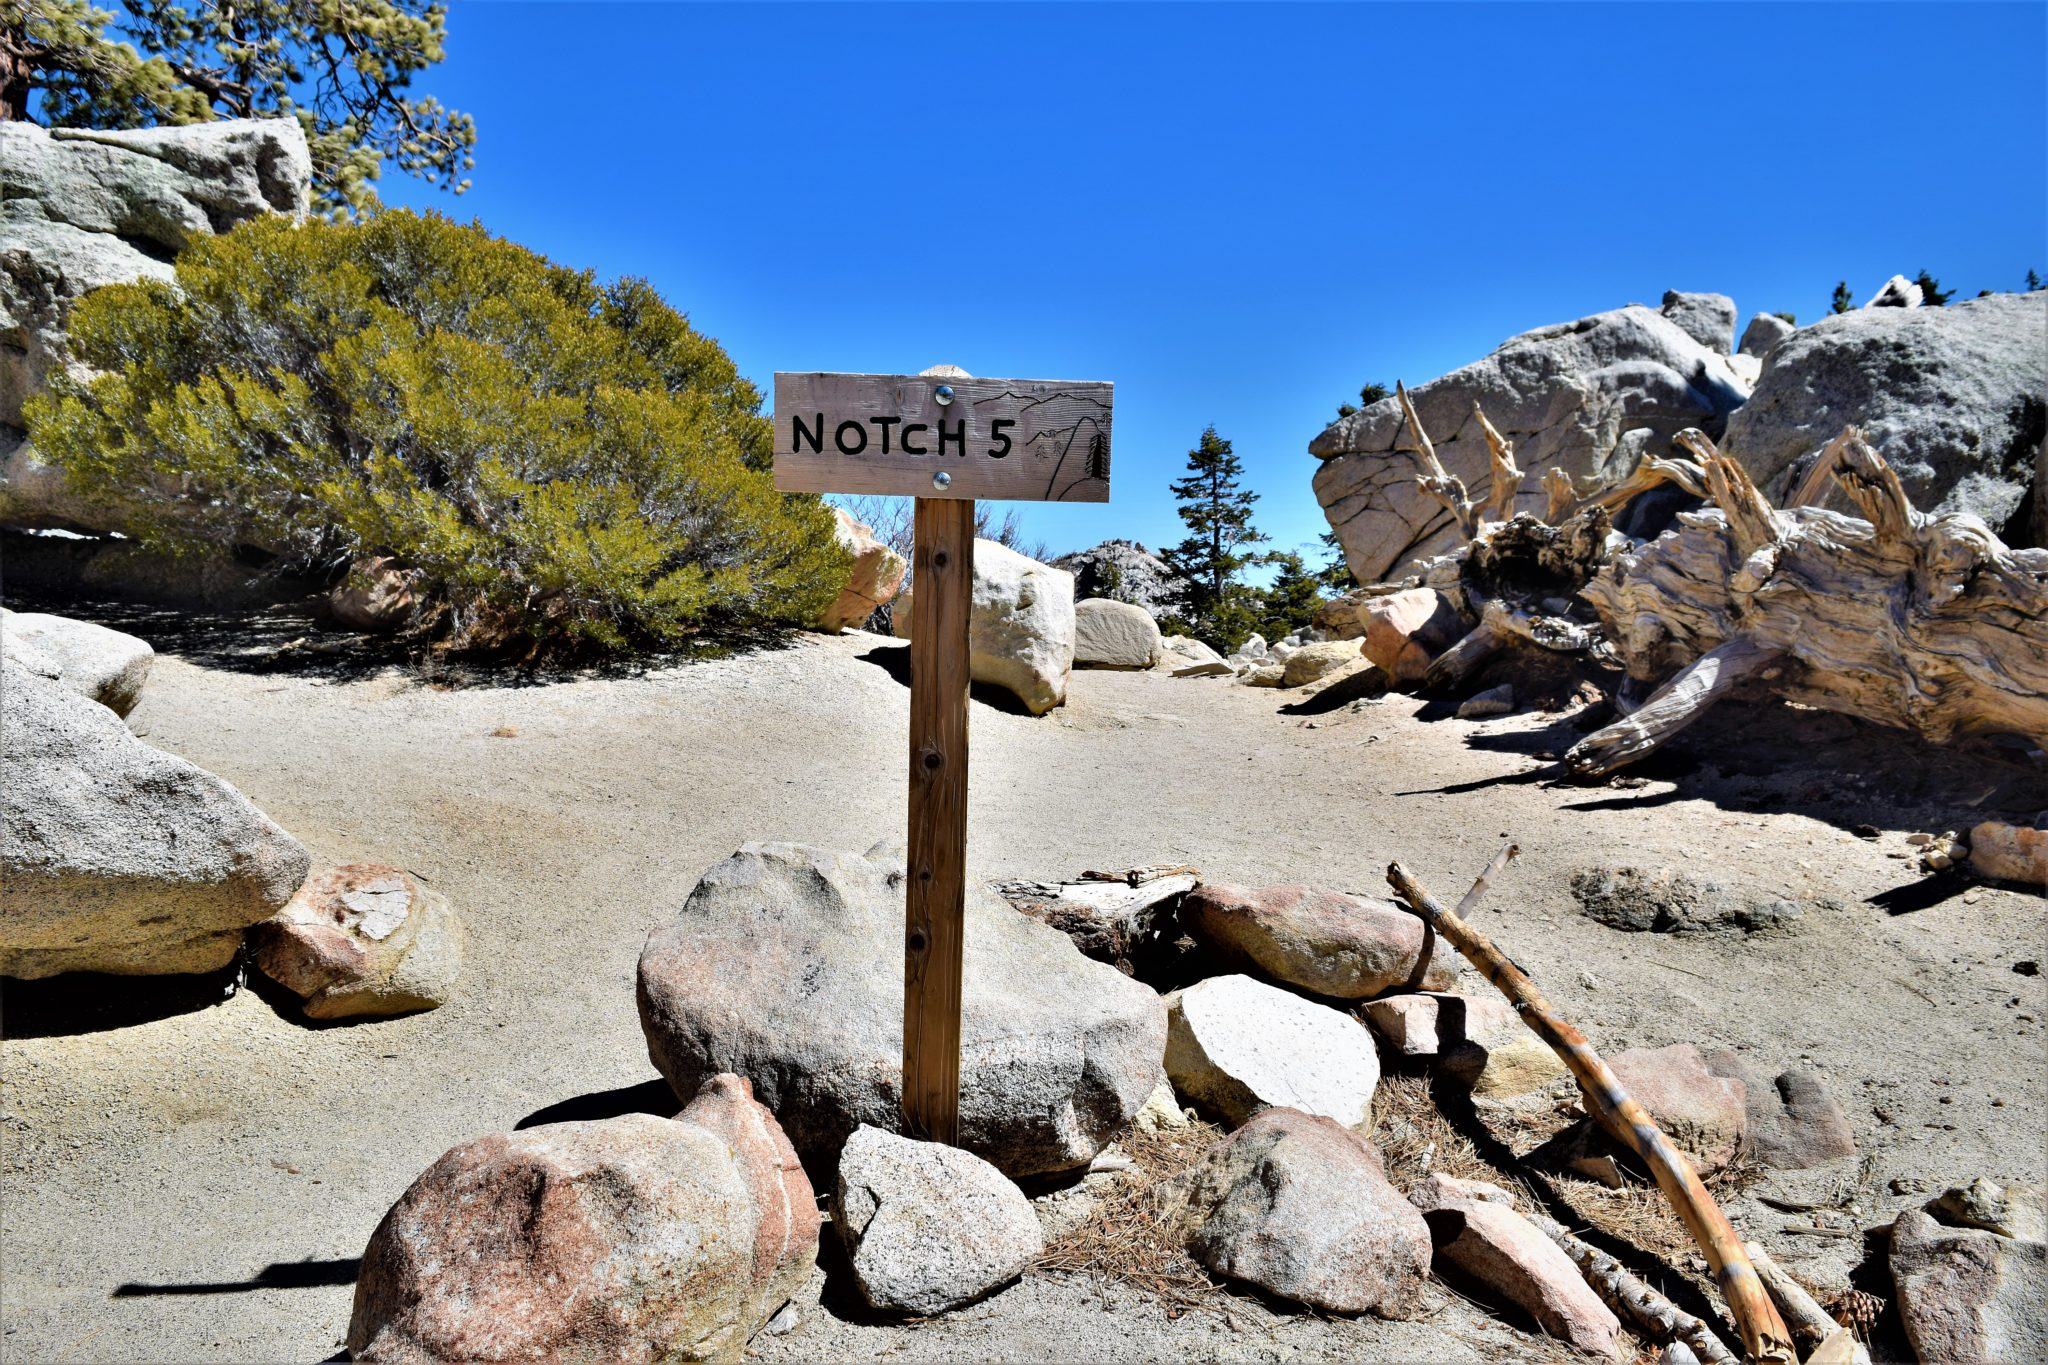 Notch 5 san jacinto state park palm springs california